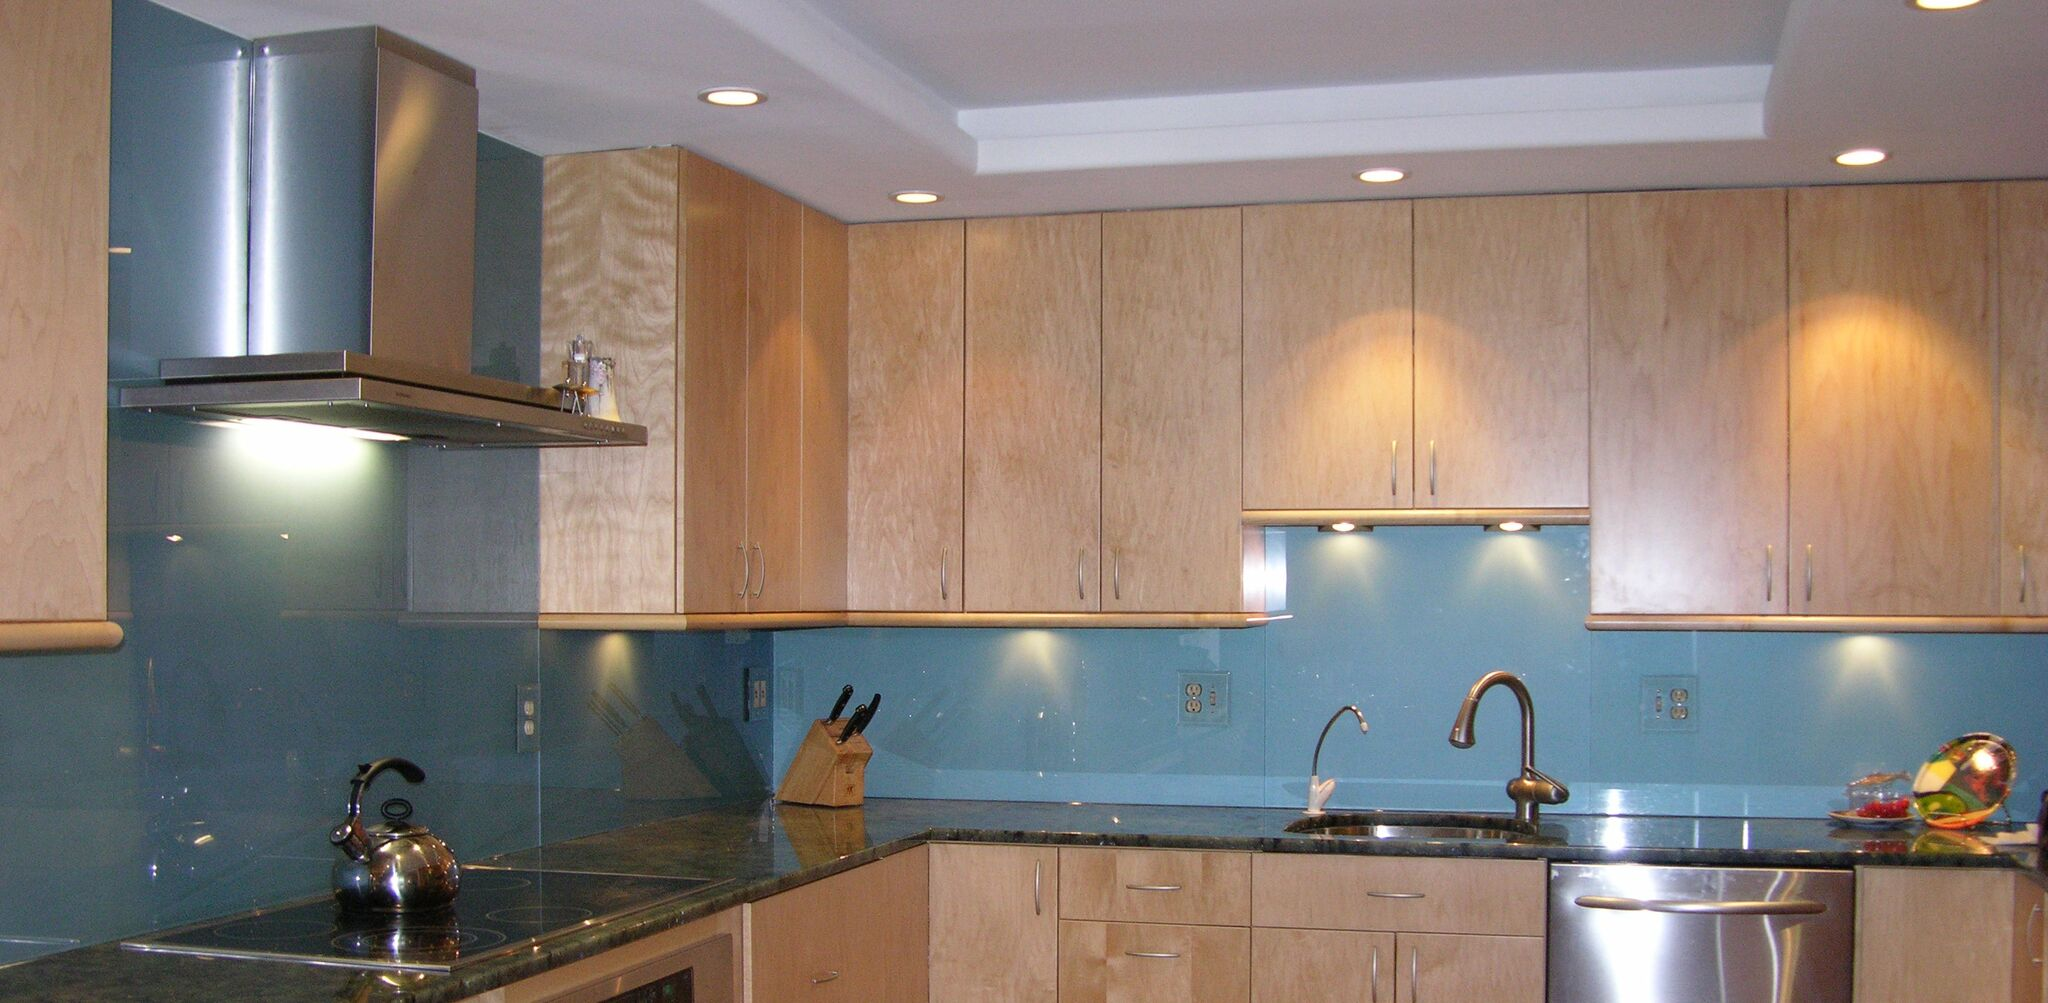 Painted Kitchen Backsplash-min